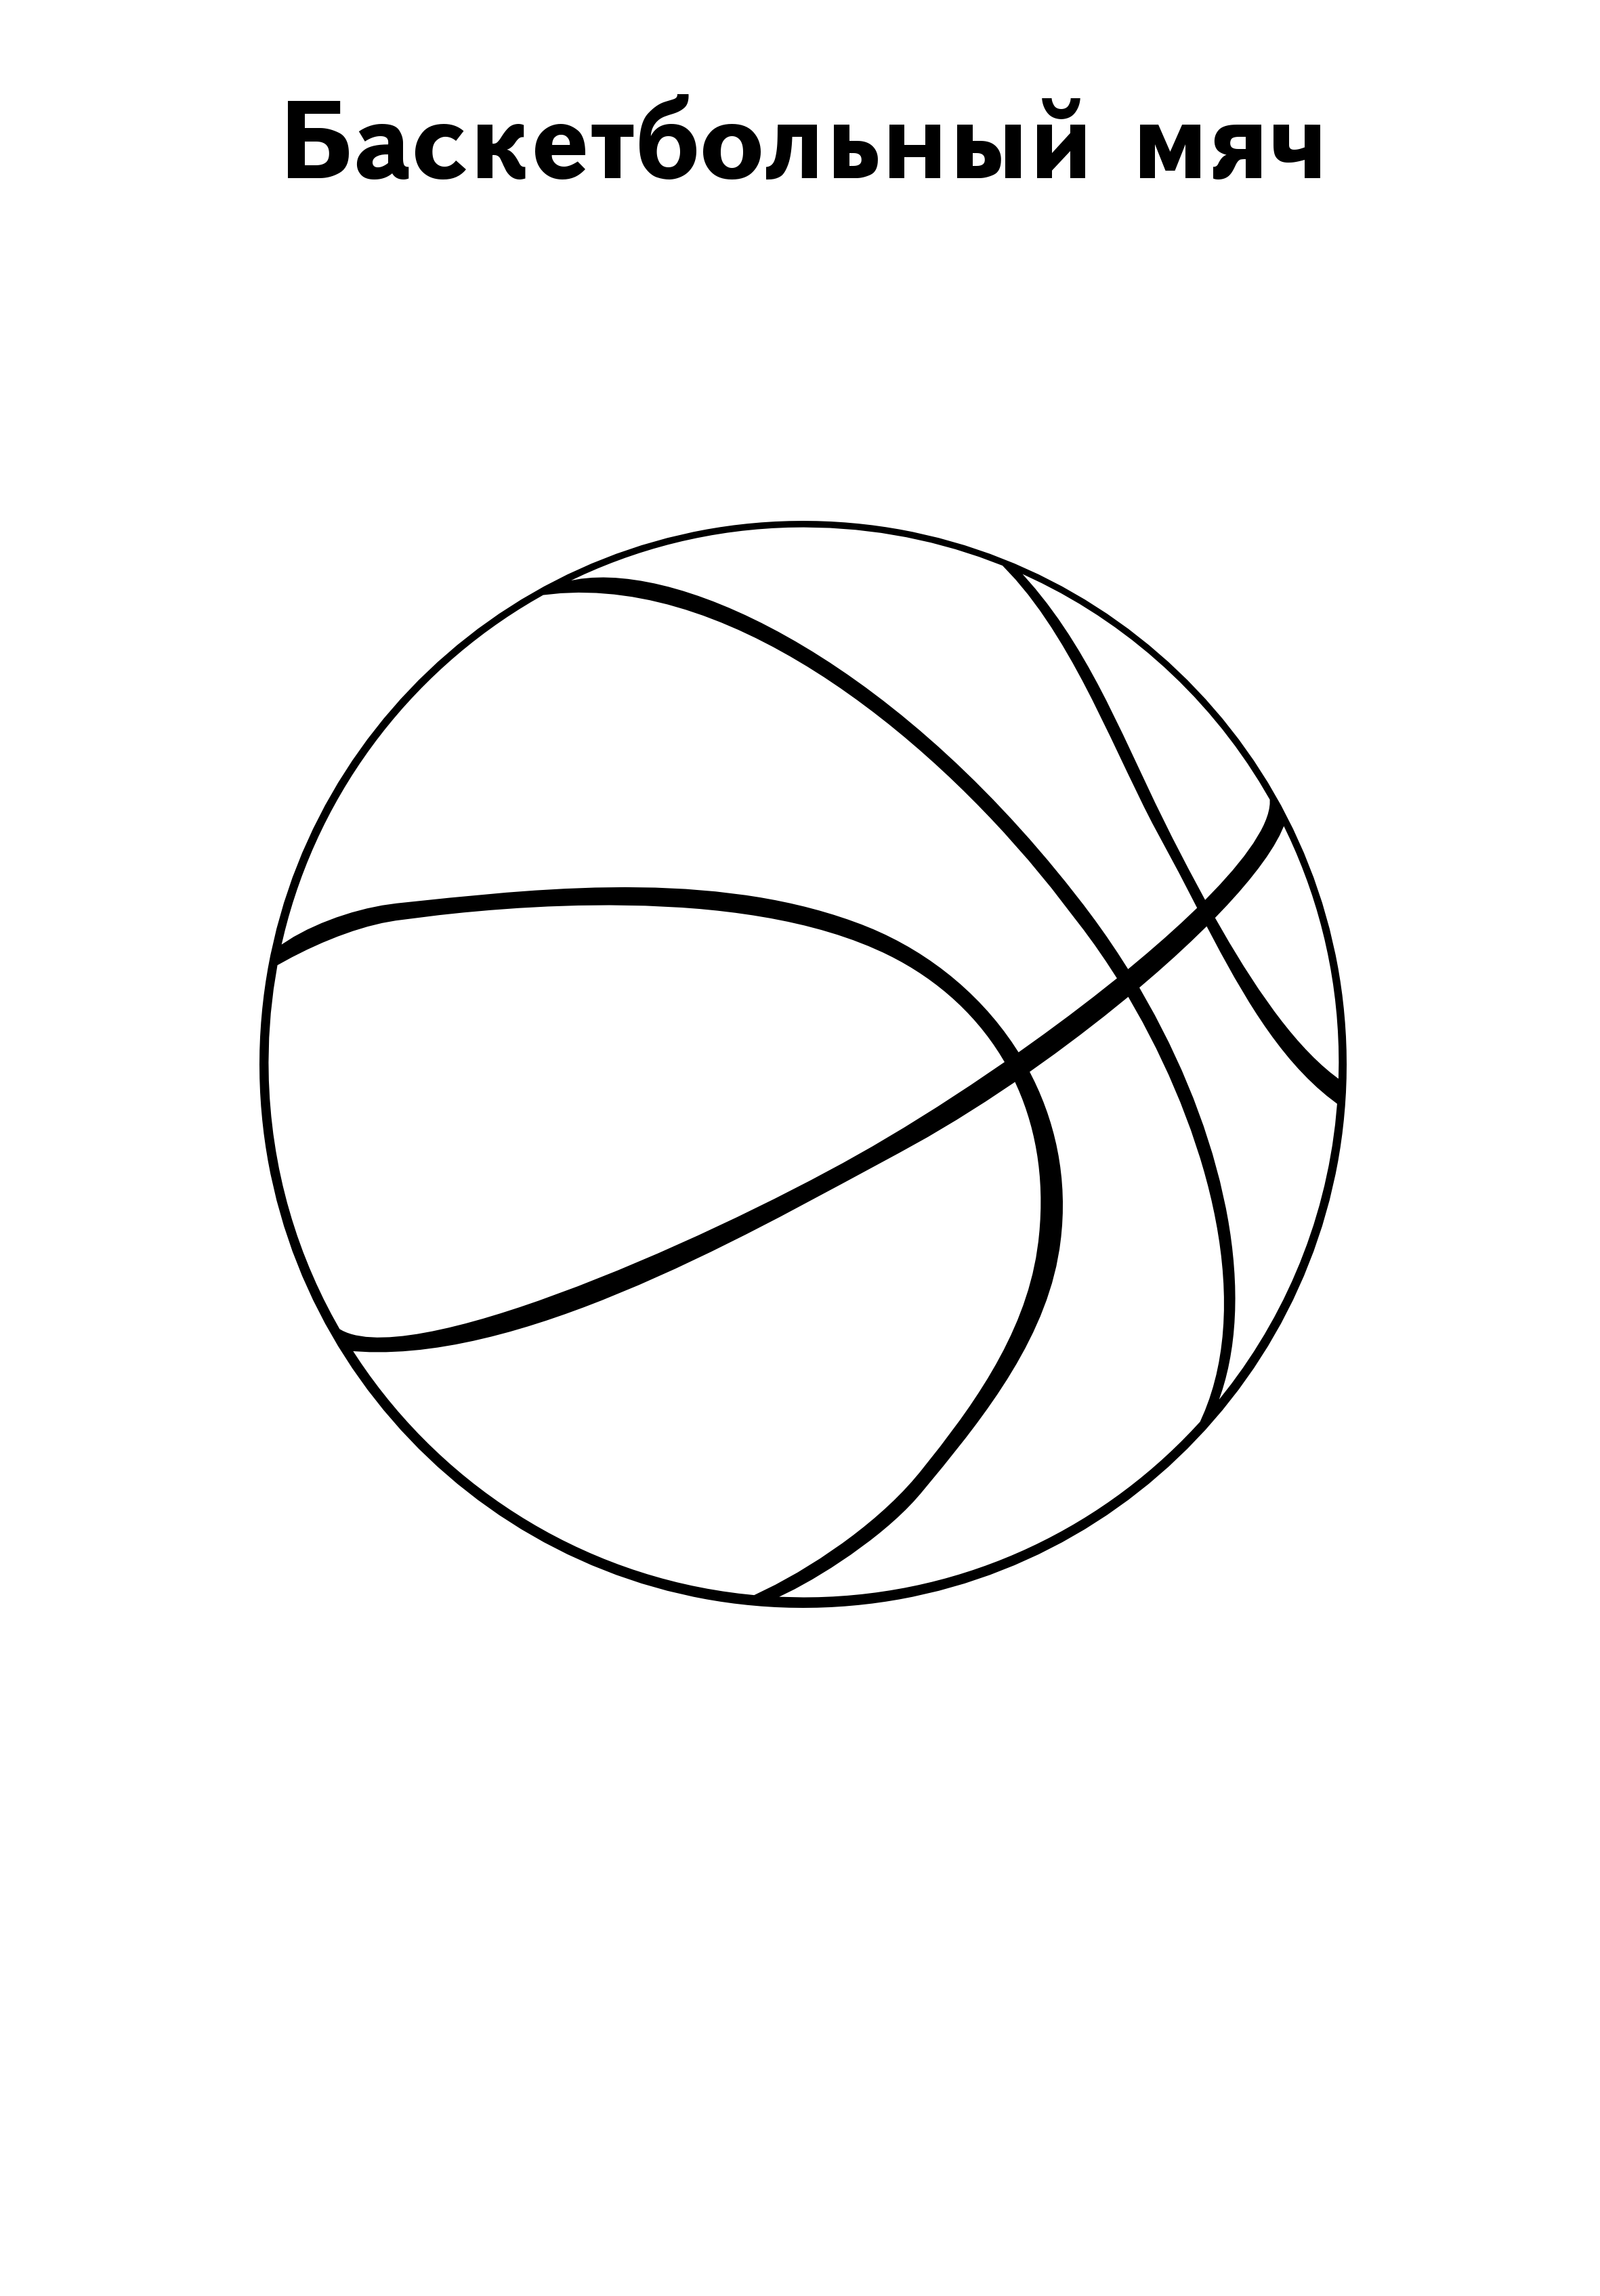 ball coloring pages beach ball coloring pages coloringbay coloring ball pages